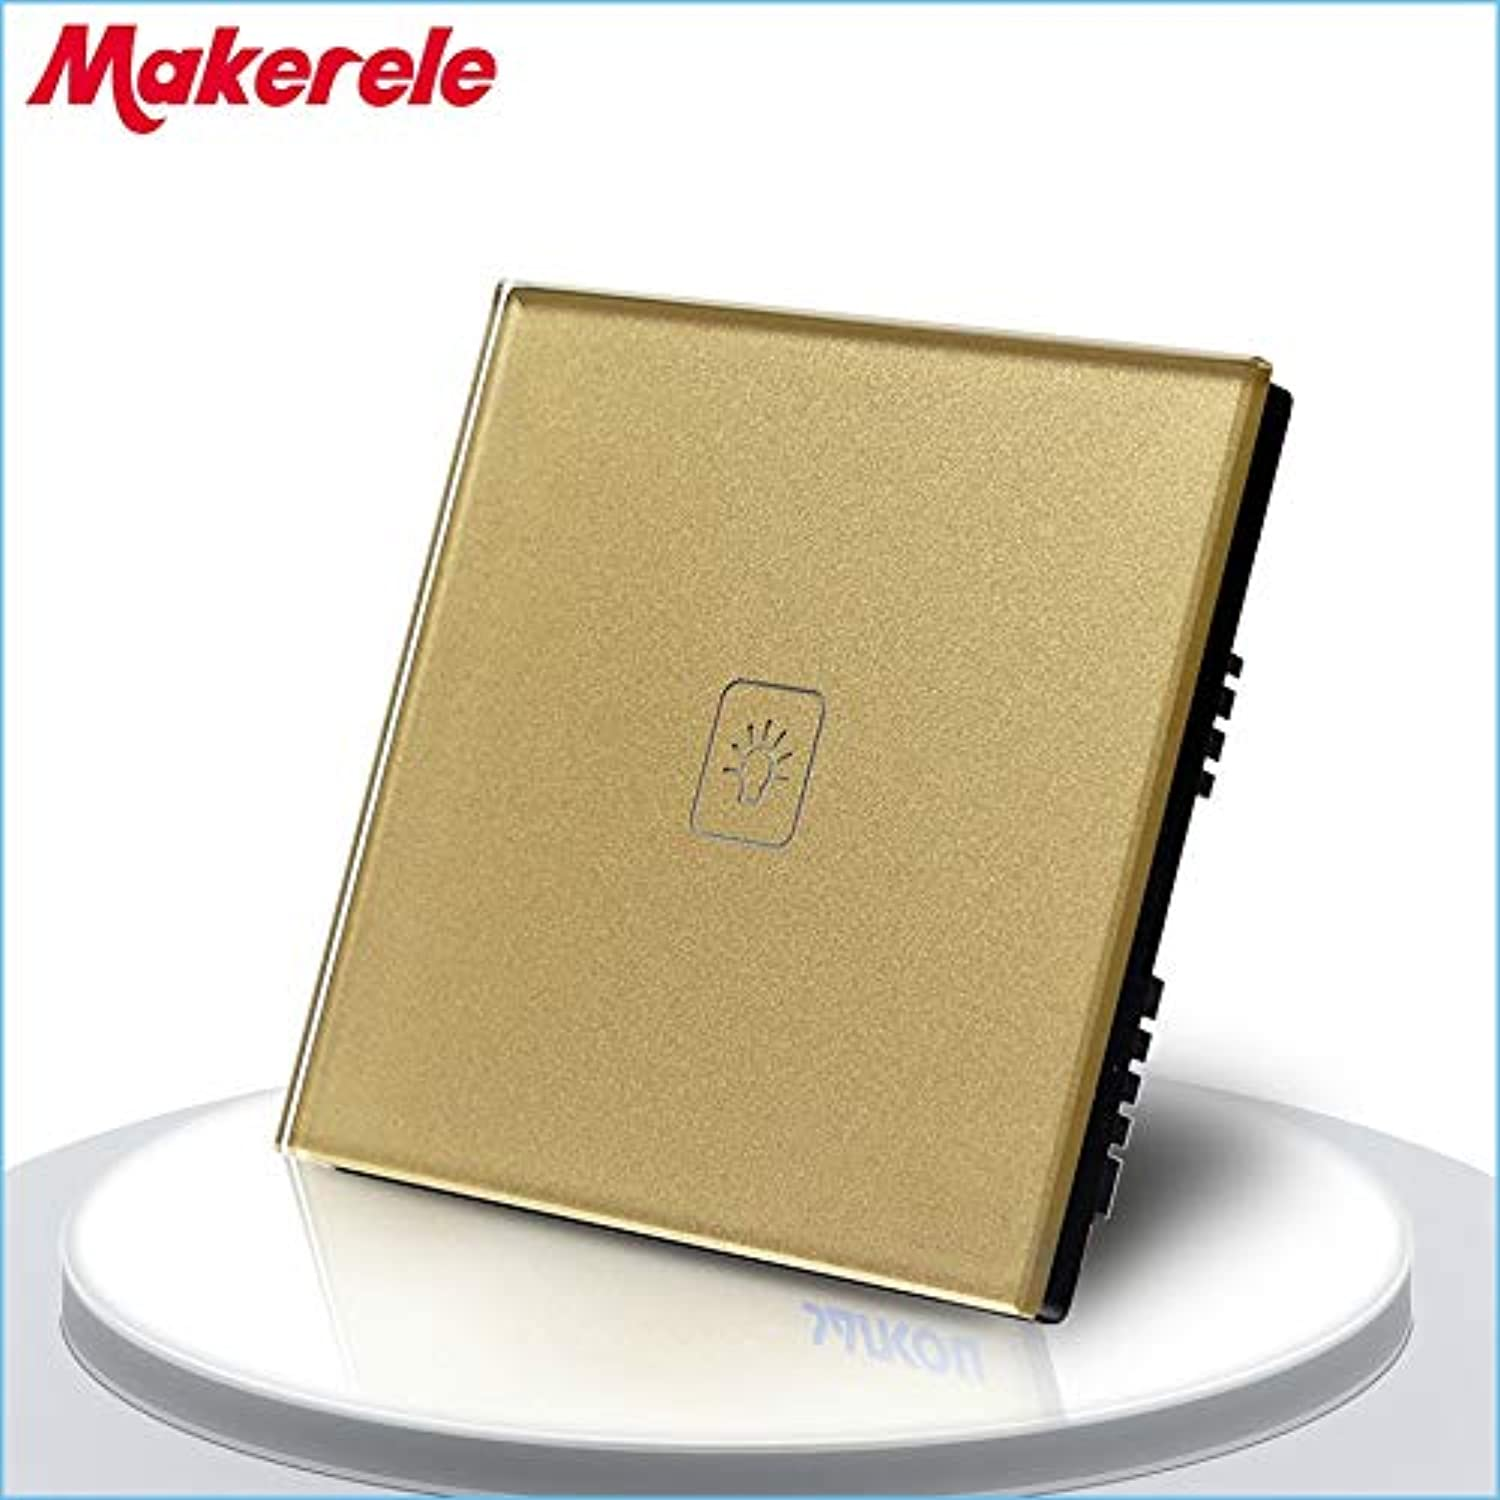 UK Standard Touch Switch 1 Gang 1 Way gold Crystal Glass Panel,Light Switch,Touch Screen Wall Switch,Wall Socket for lamp